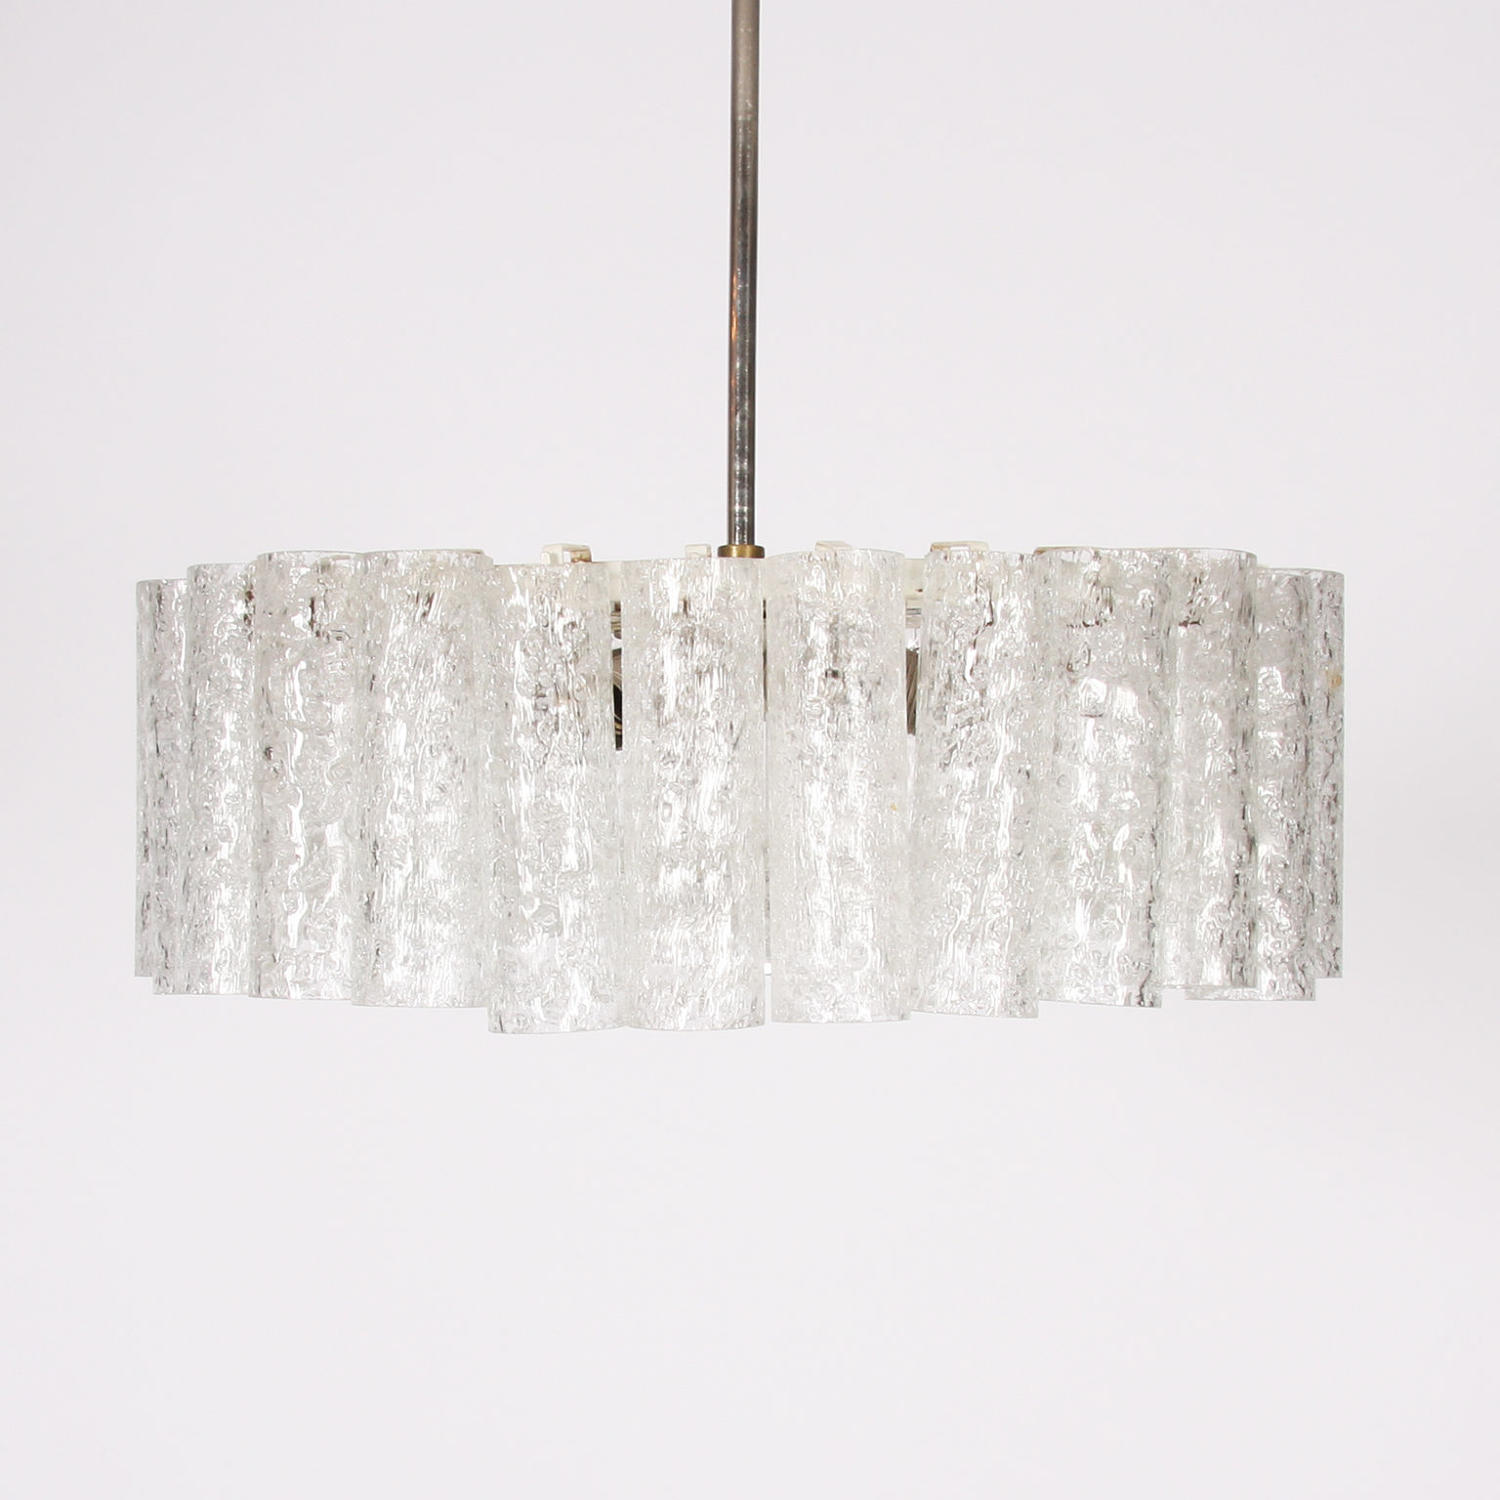 Doria Leuchten Ice Glass & Chrome Pendant Light